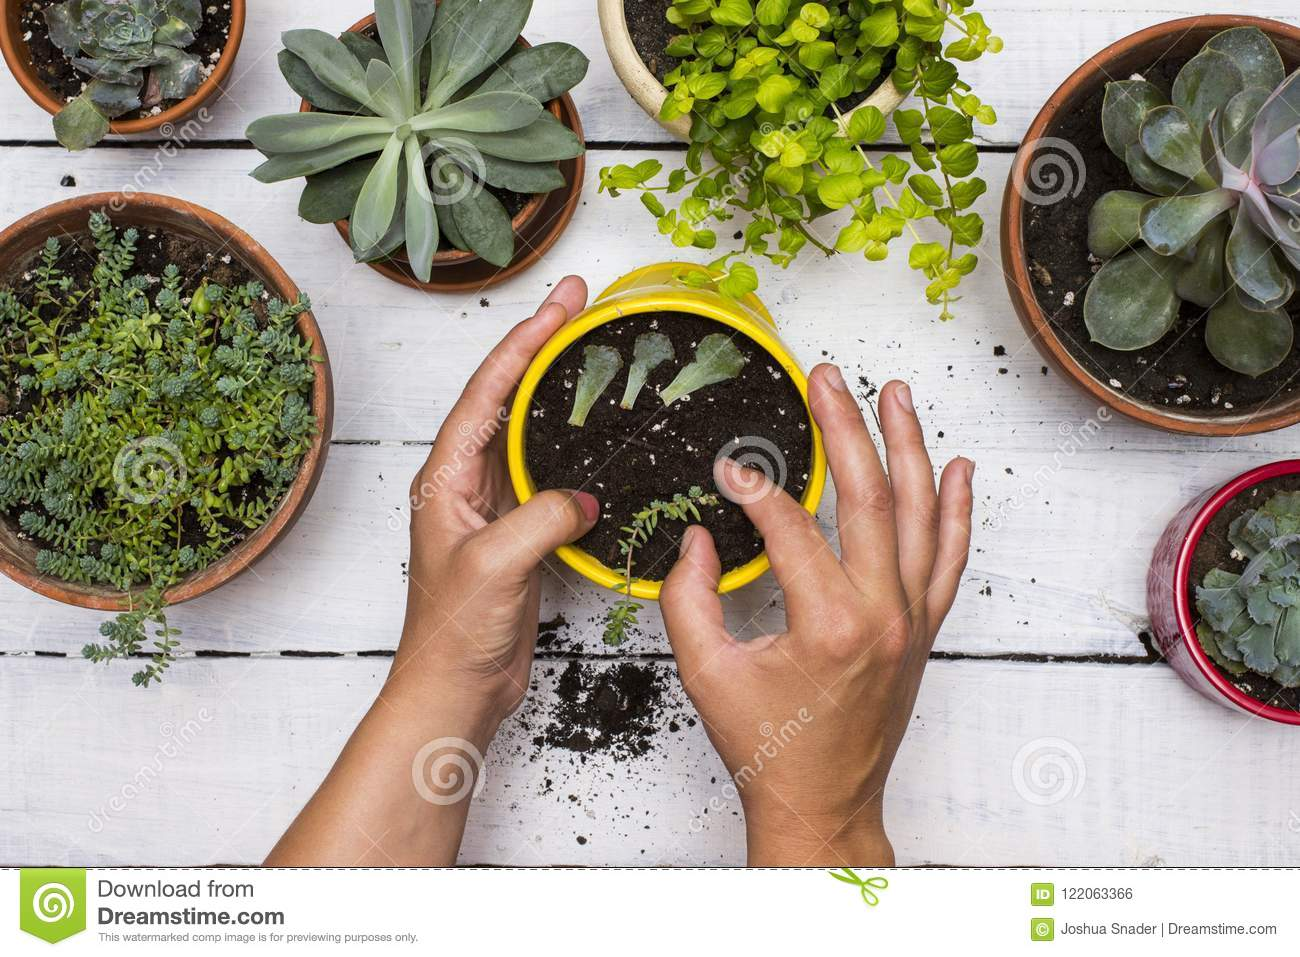 Gardner S Hands Planting Succulents In Pot Surround By Other Succulent Plants With Vintage White Board Background Stock Photo Image Of Starting Succulent 122063366